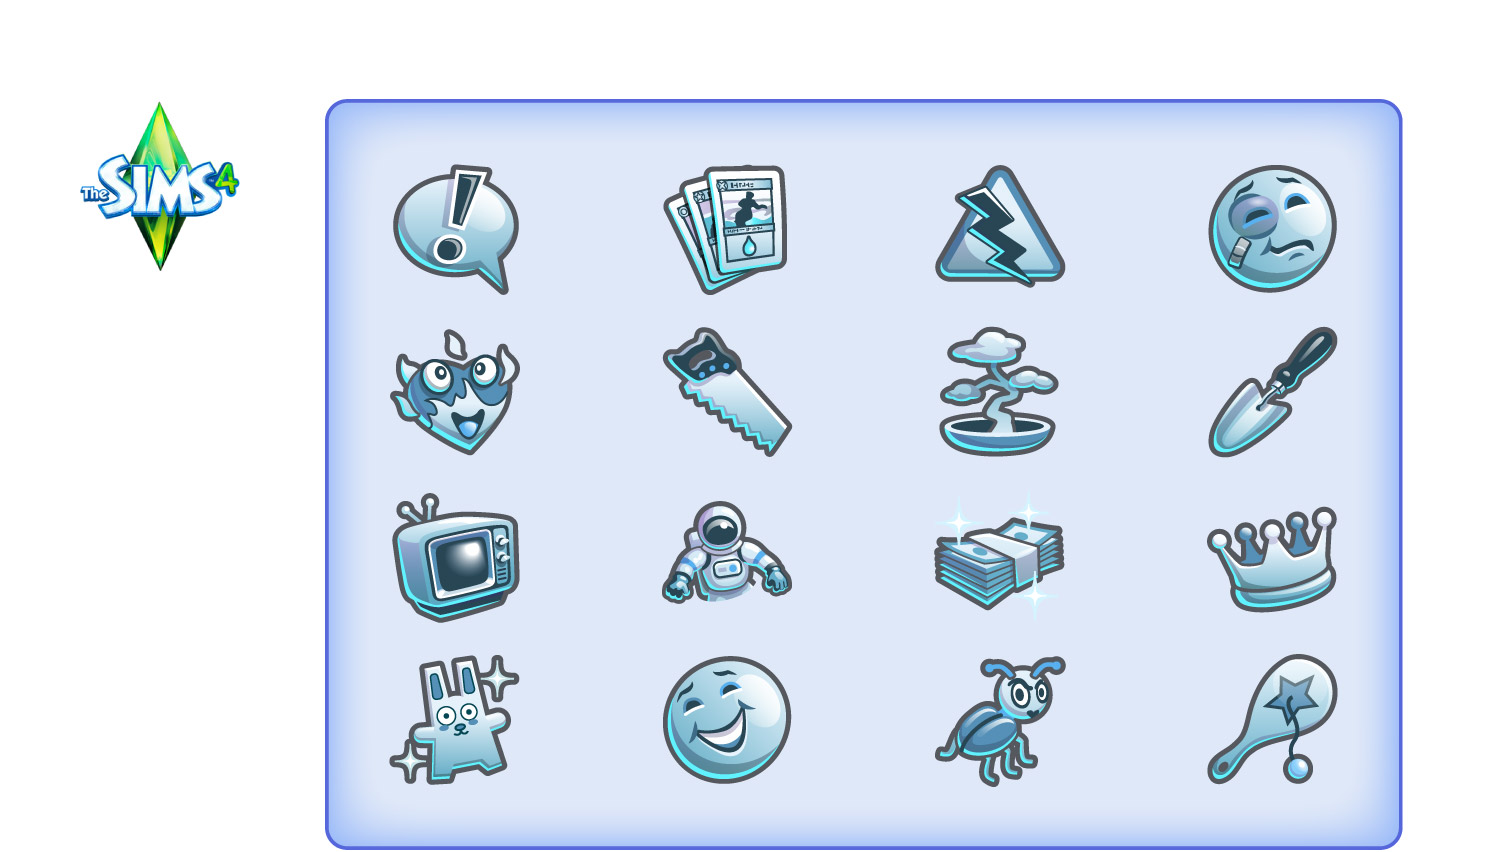 Icons for EA Games' Sims4